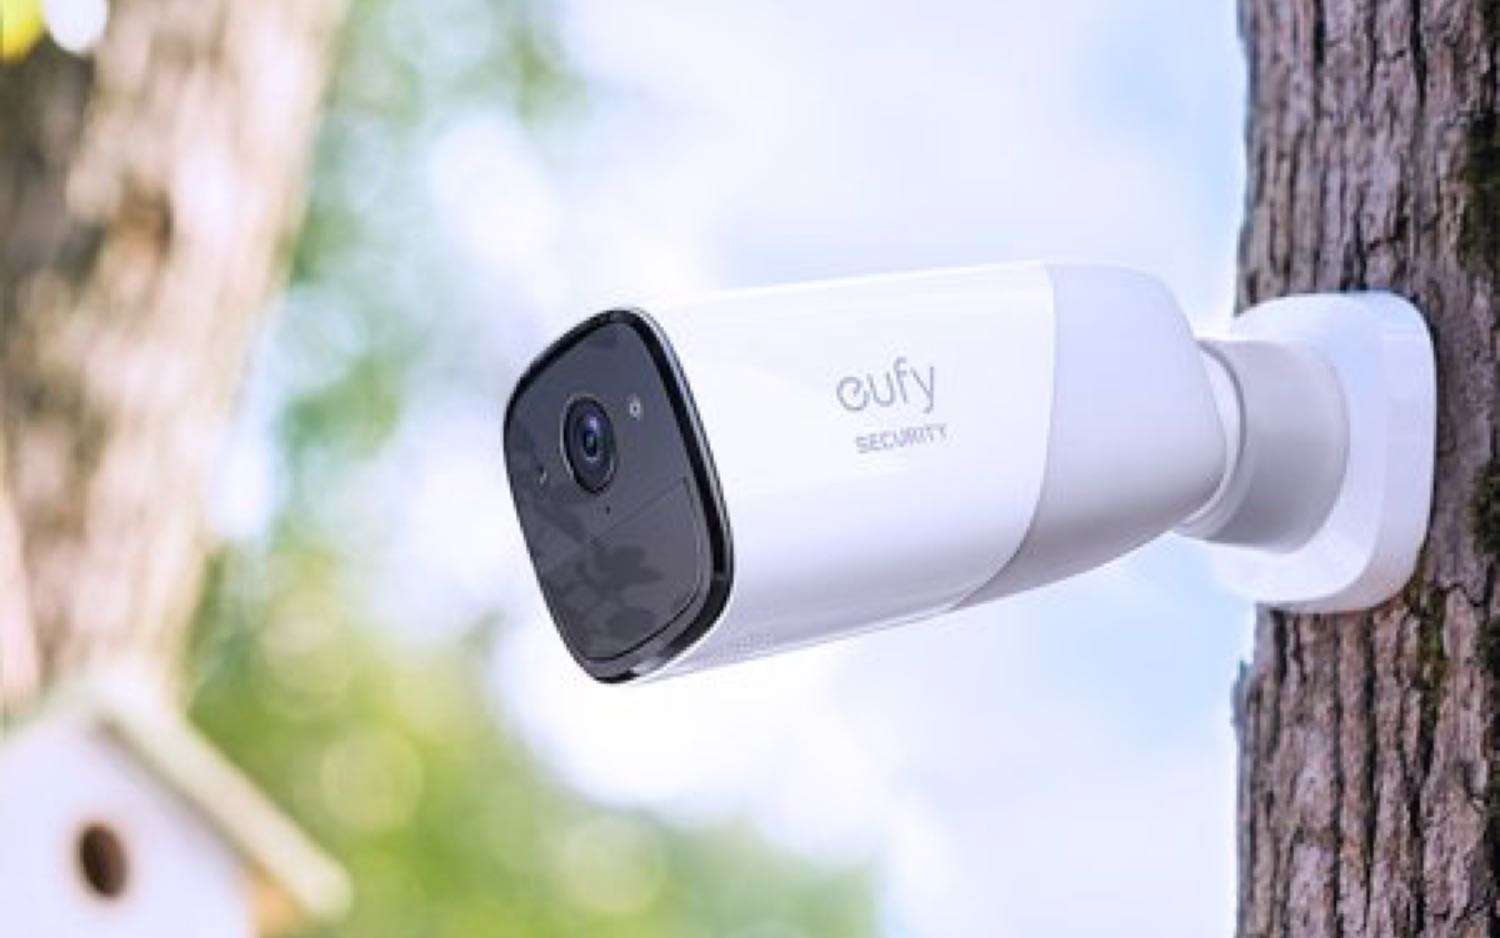 Anker EufyCam Security Camera Review: Not Fully Baked